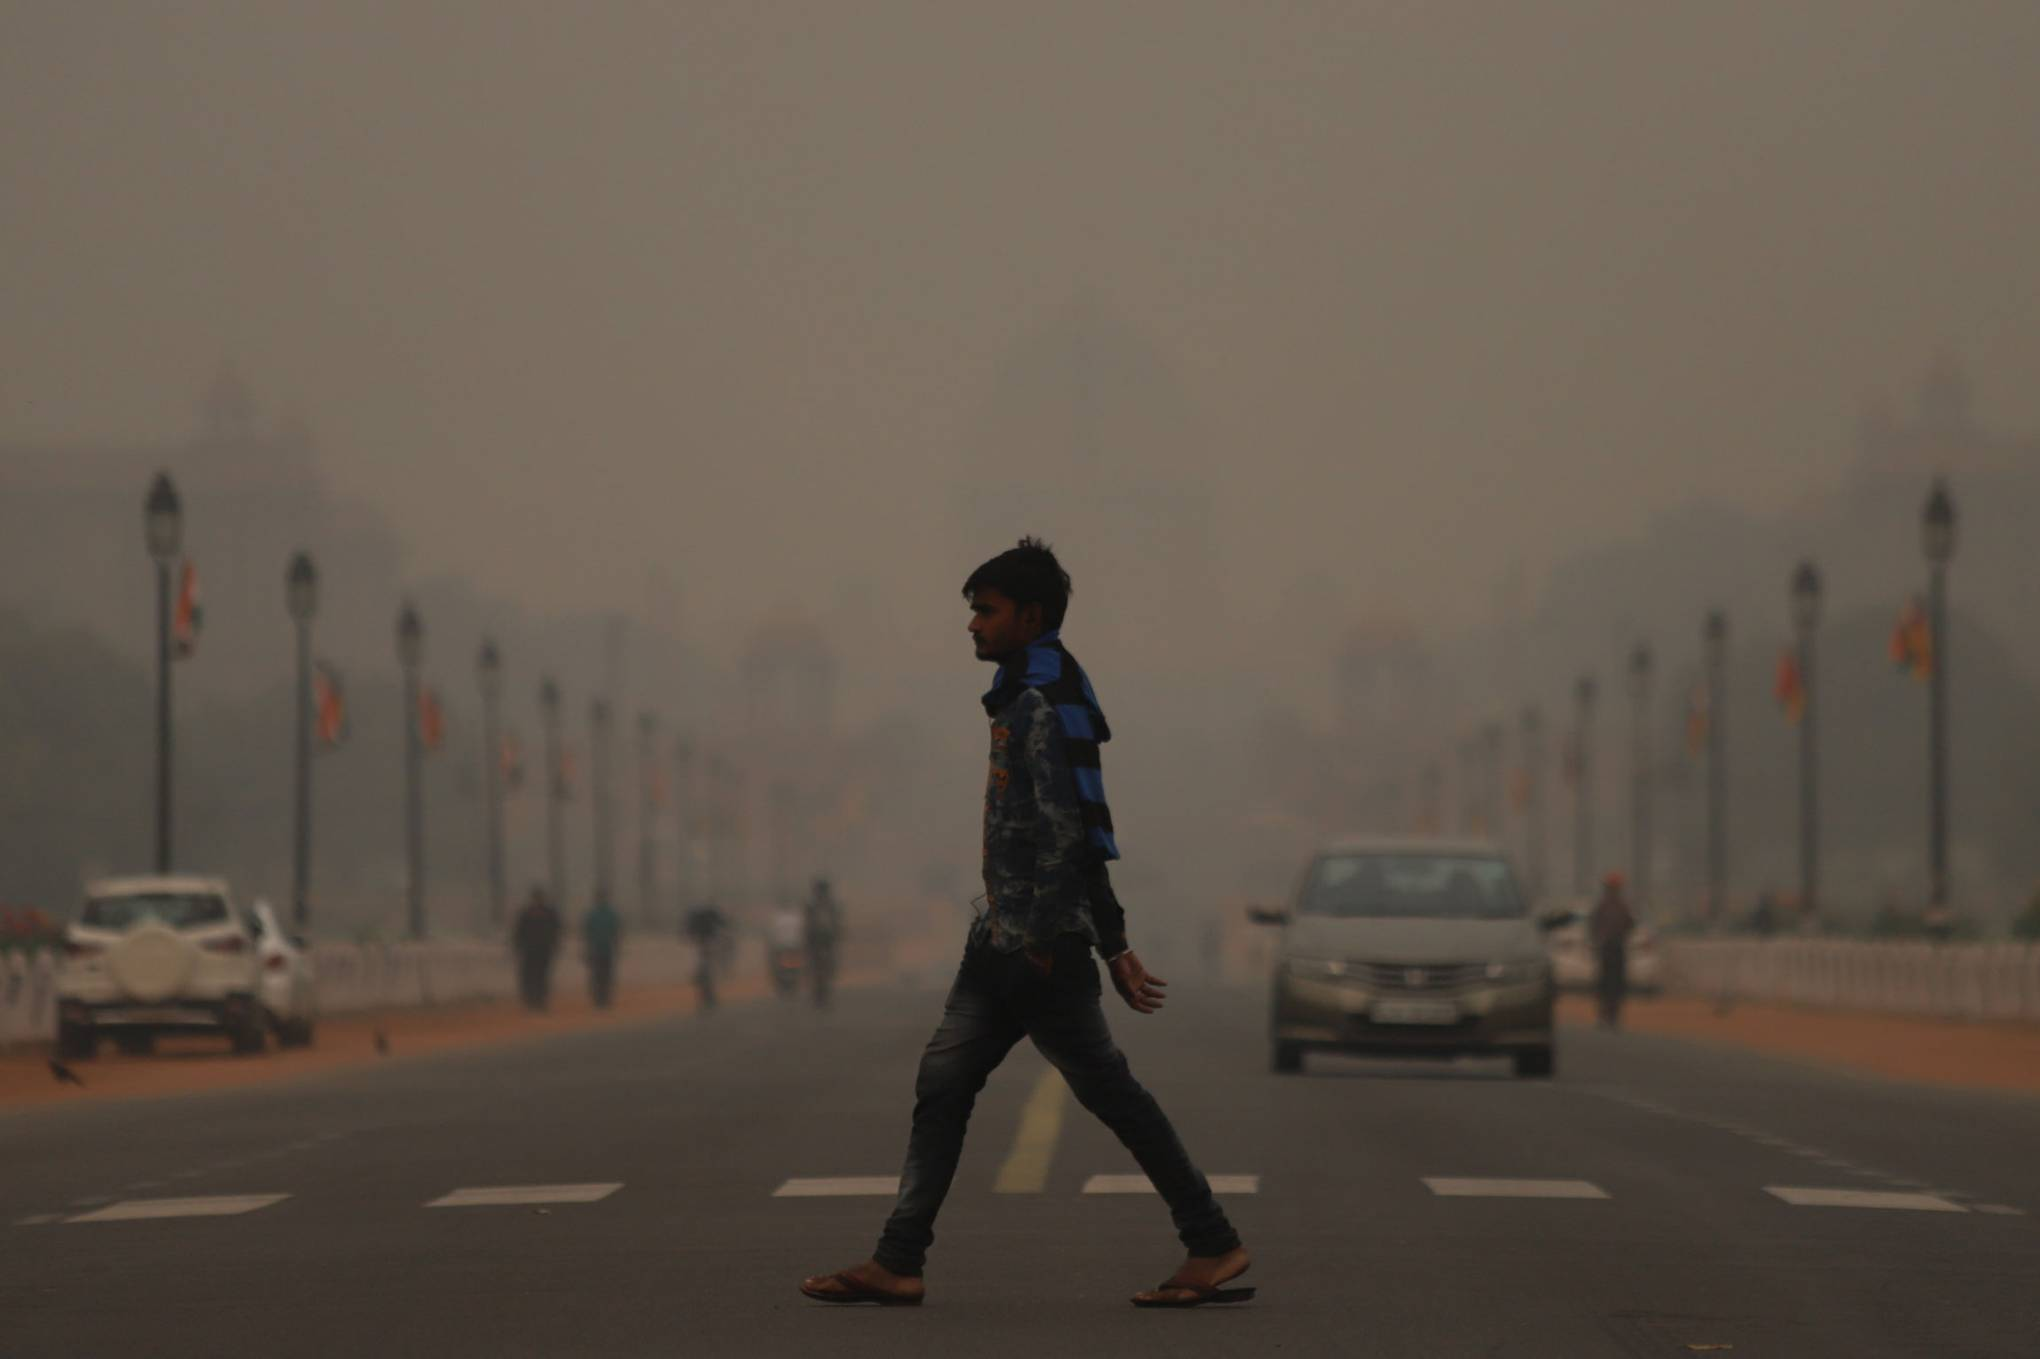 Delhi's massive fog problem is the visual climate wakeup call we need